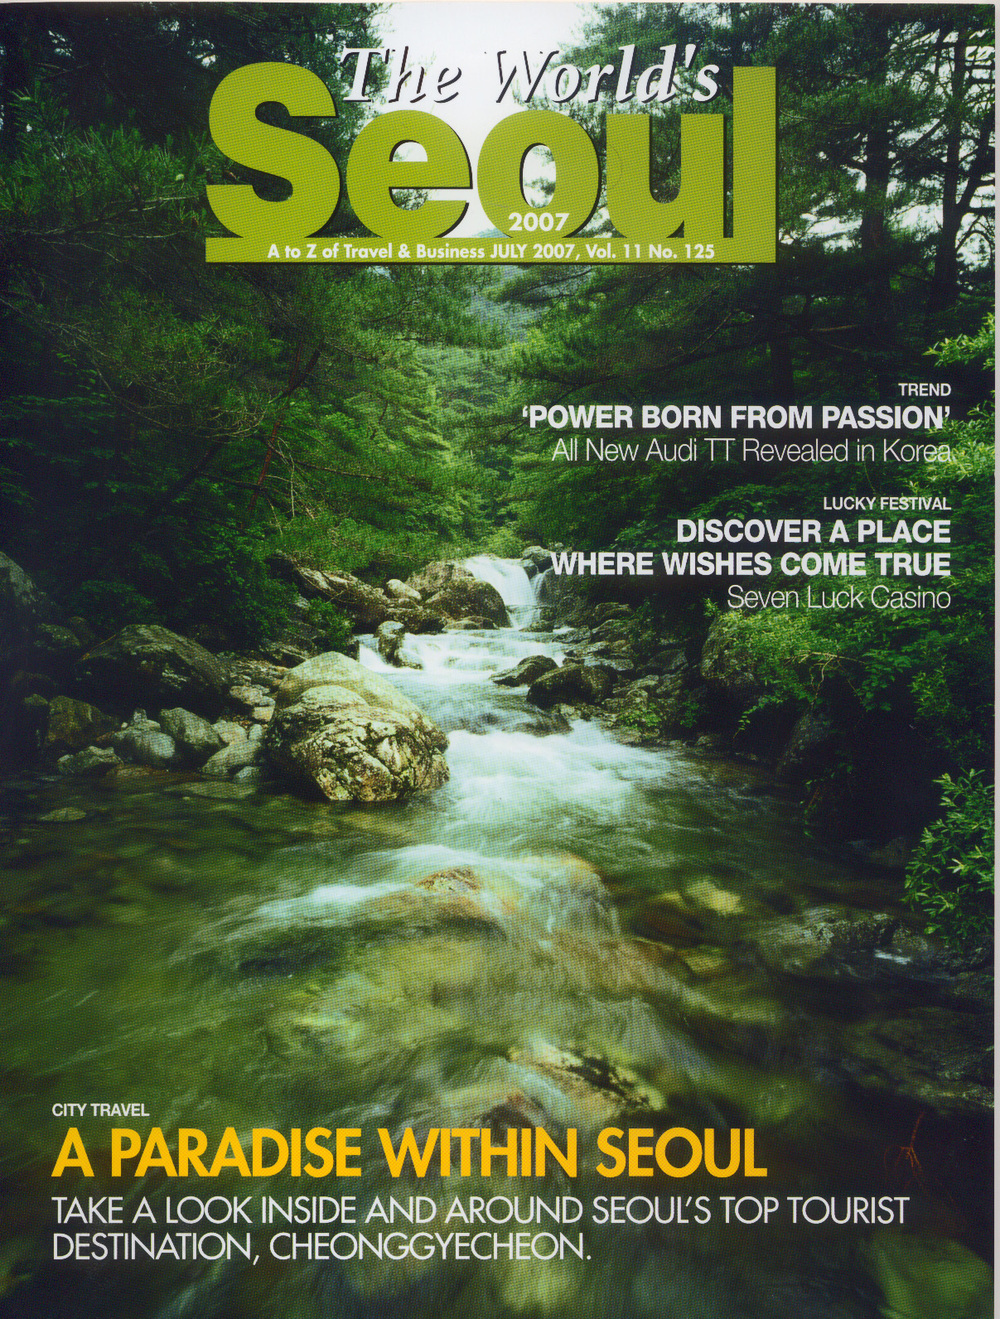 2007-7 The World's Seoul cover.jpg